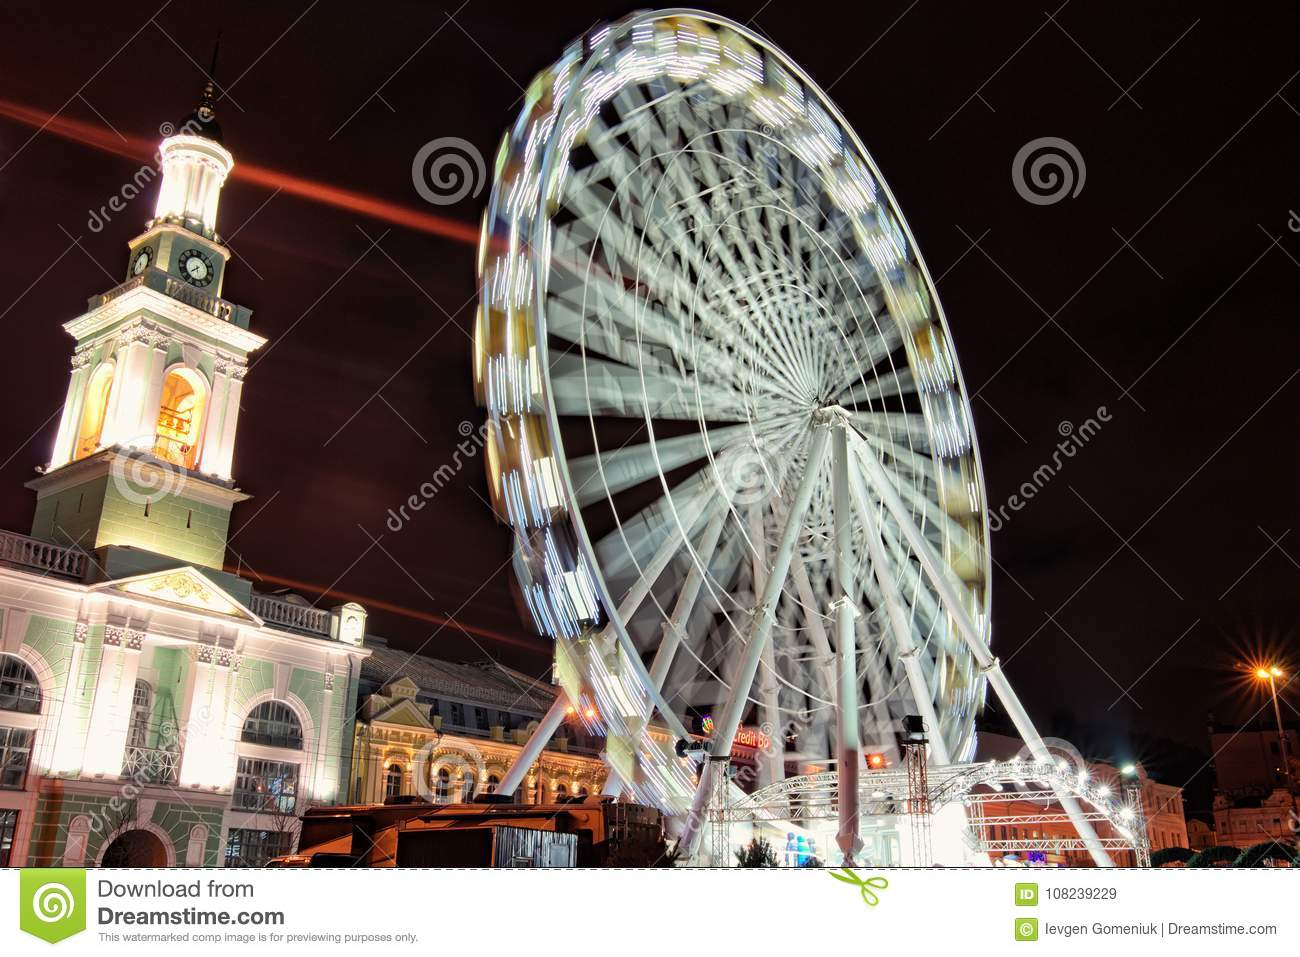 evening view of the andreevsky descent big ferris wheel at christmas markets at